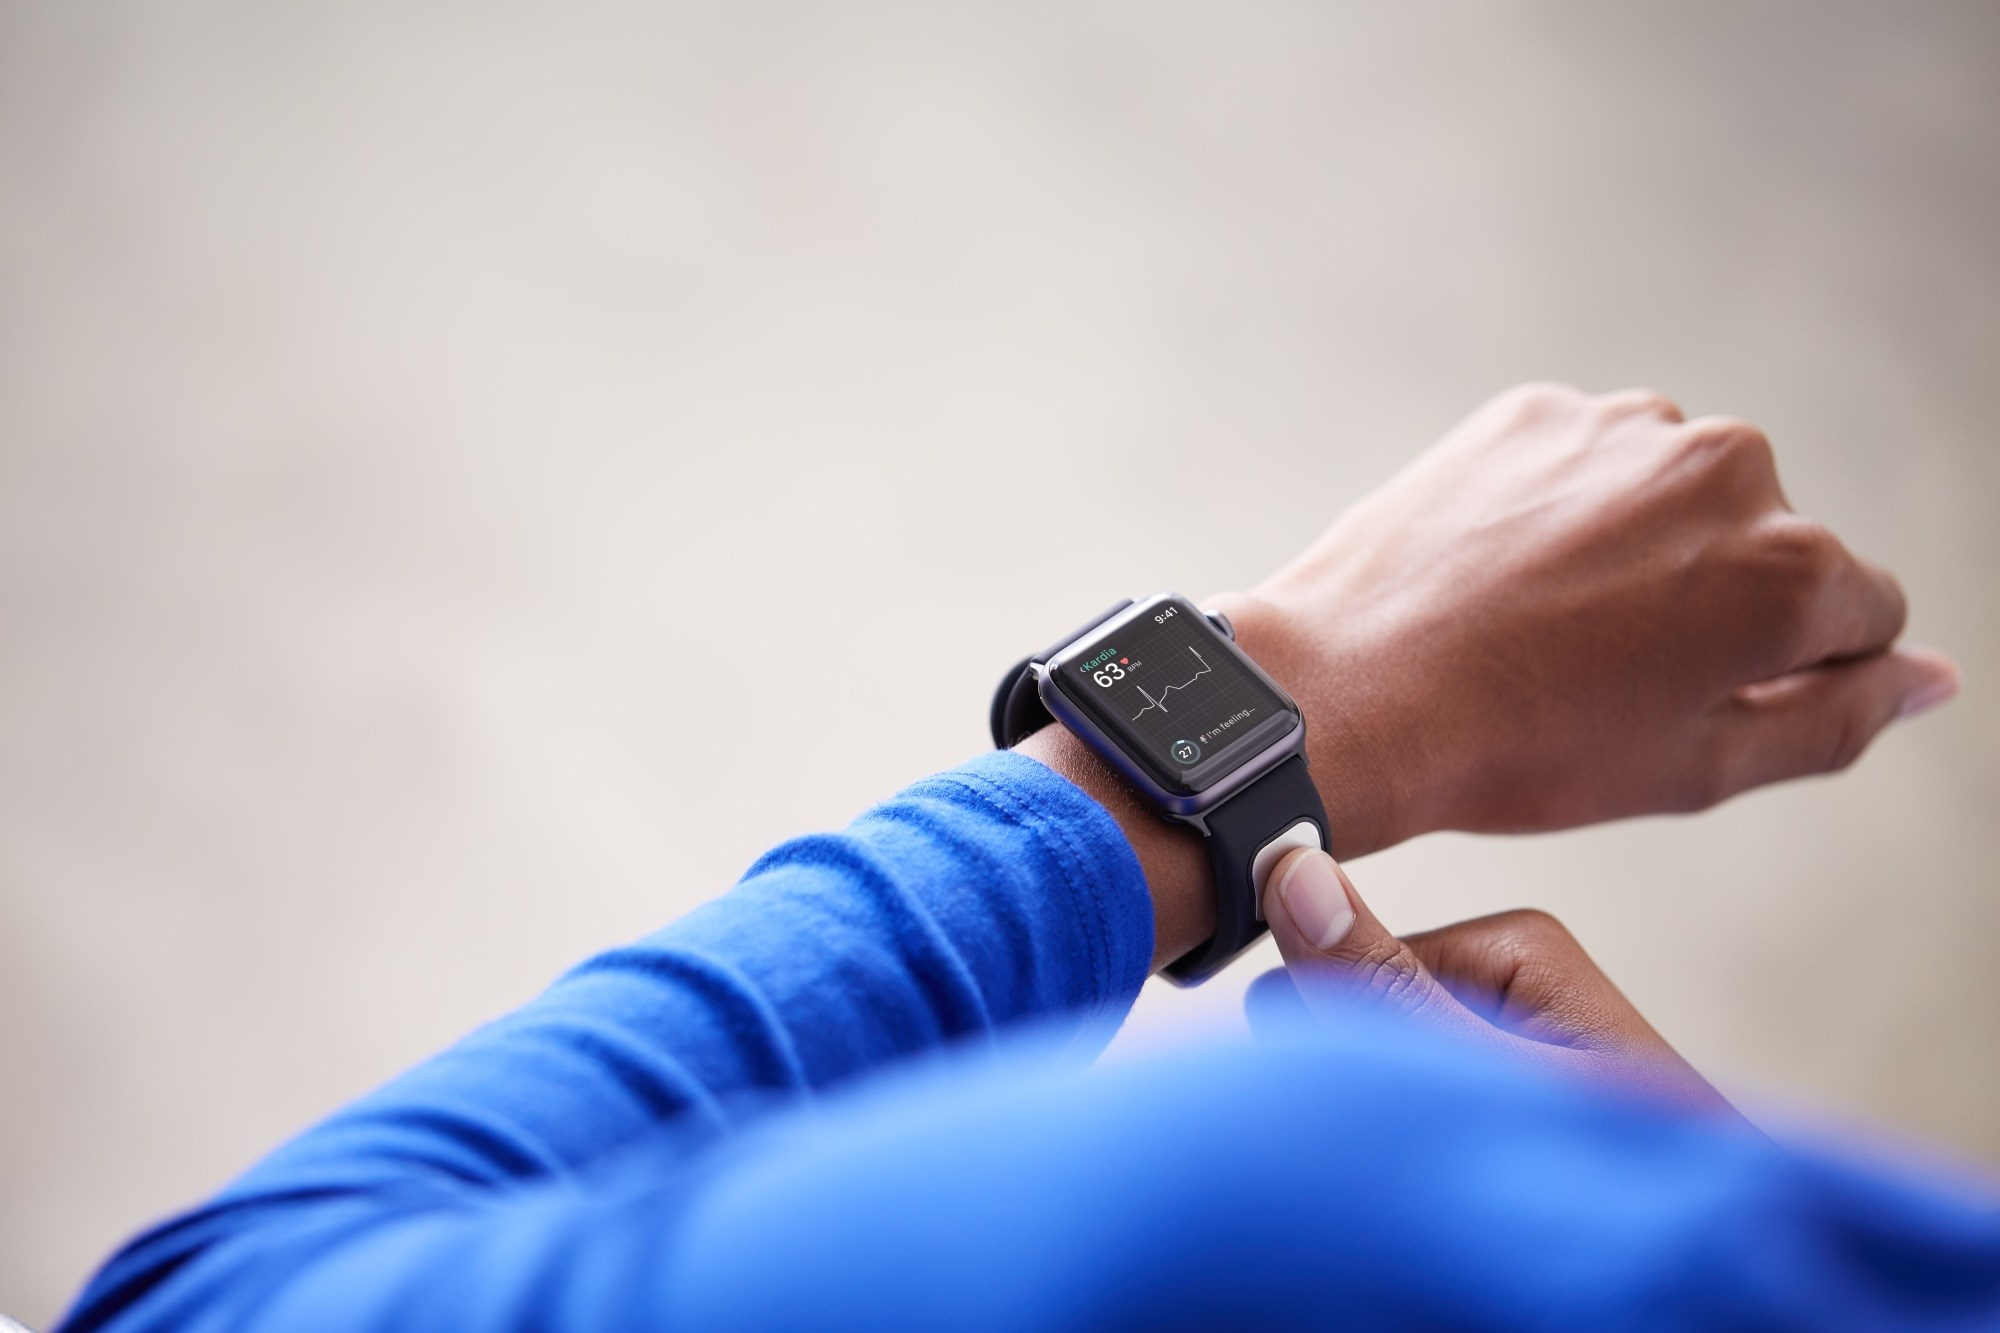 Smartwatch Algorithm Highly Effective for Detection of Atrial Fibrillation